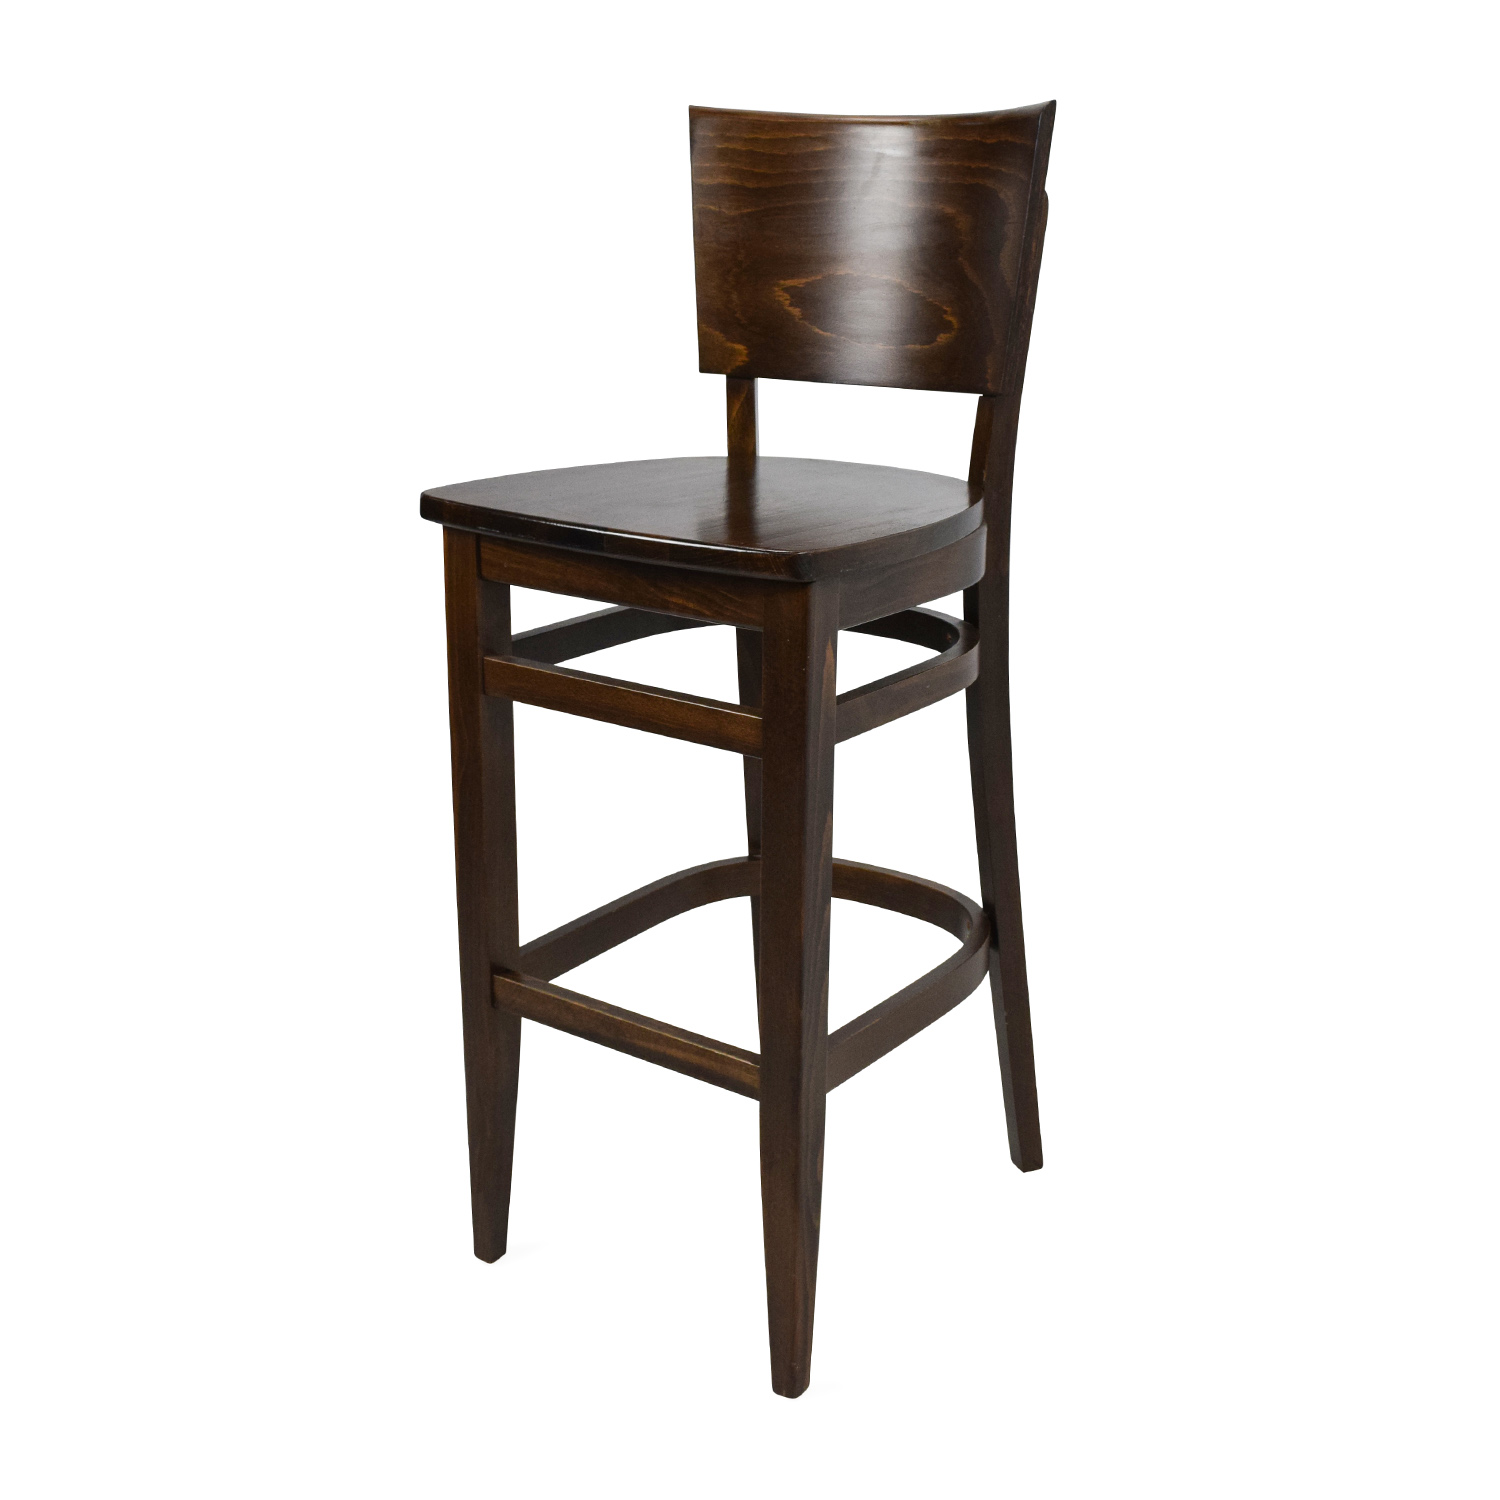 Chairs design within reach -  Design Within Reach Dwr Design Within Reach Kyoto Bar Stool Chairs